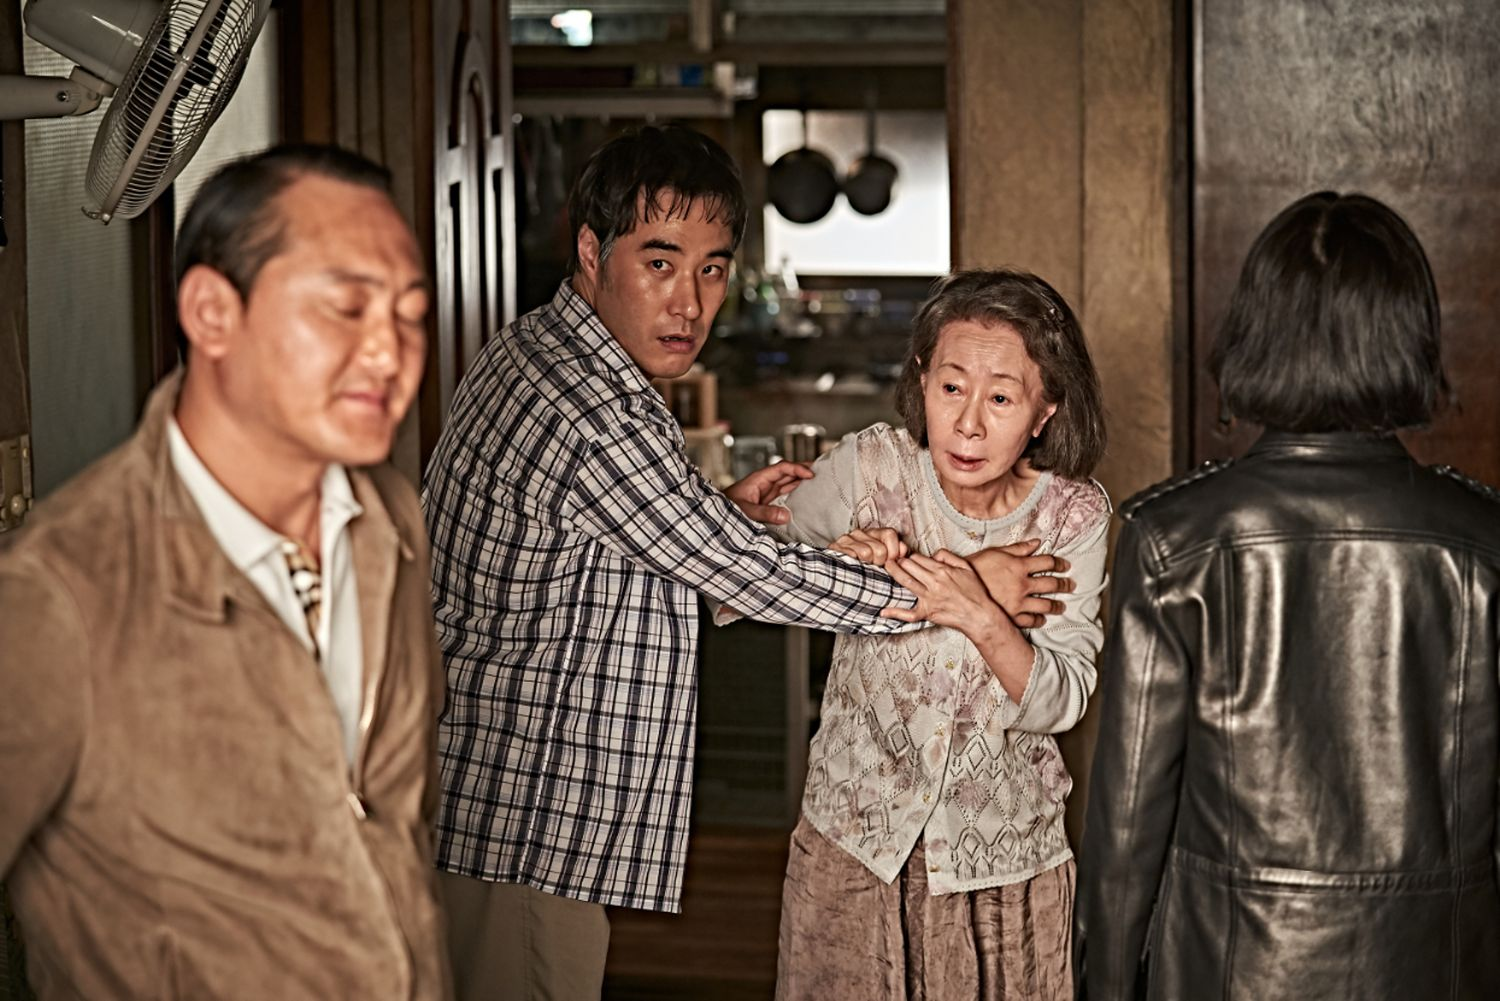 Jeong Man-sik, Bae Sung-woo and Youn Yuh-jung in BEASTS CLAWING AT STRAWS (Blue Finch Film Releasing)